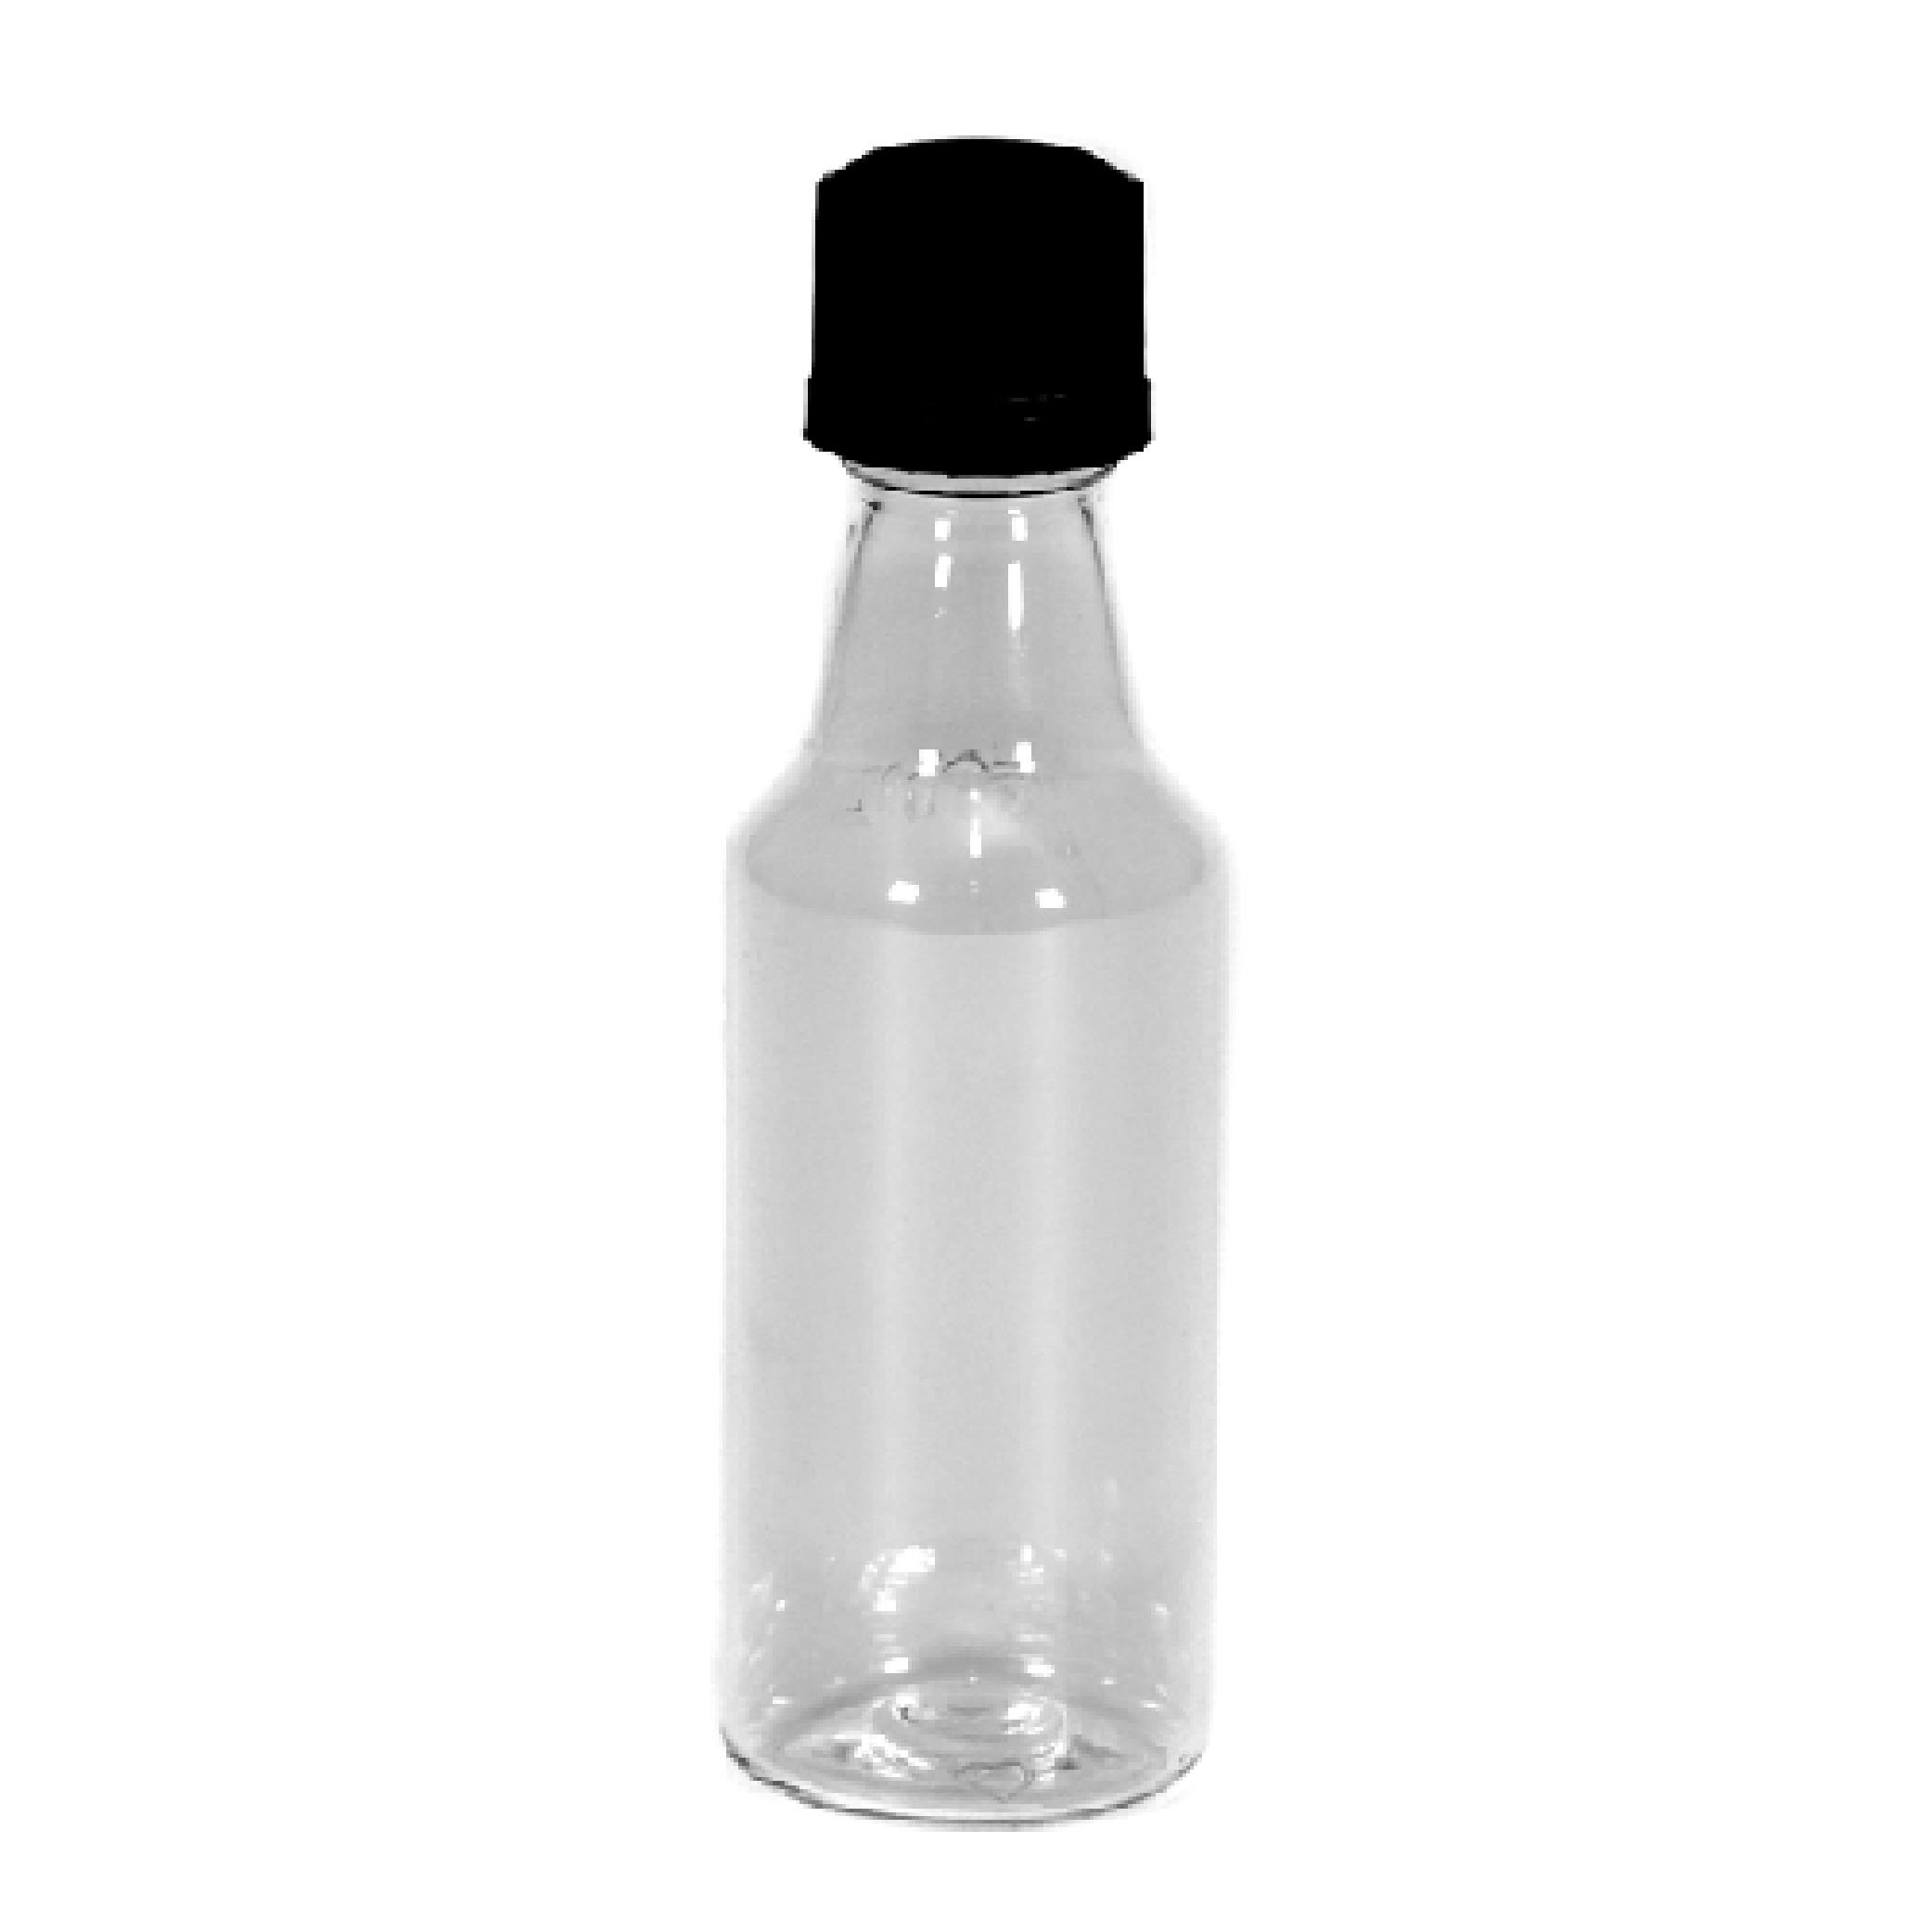 100 Mini ROUND Plastic Alcohol 50ml Liquor Bottle Shots + Caps (100 Bulk) for party favors in Weddings, Anniversary, Events, holds BBQ Sauce Samples, Essential Oils, etc. Proudly Made in the USA!